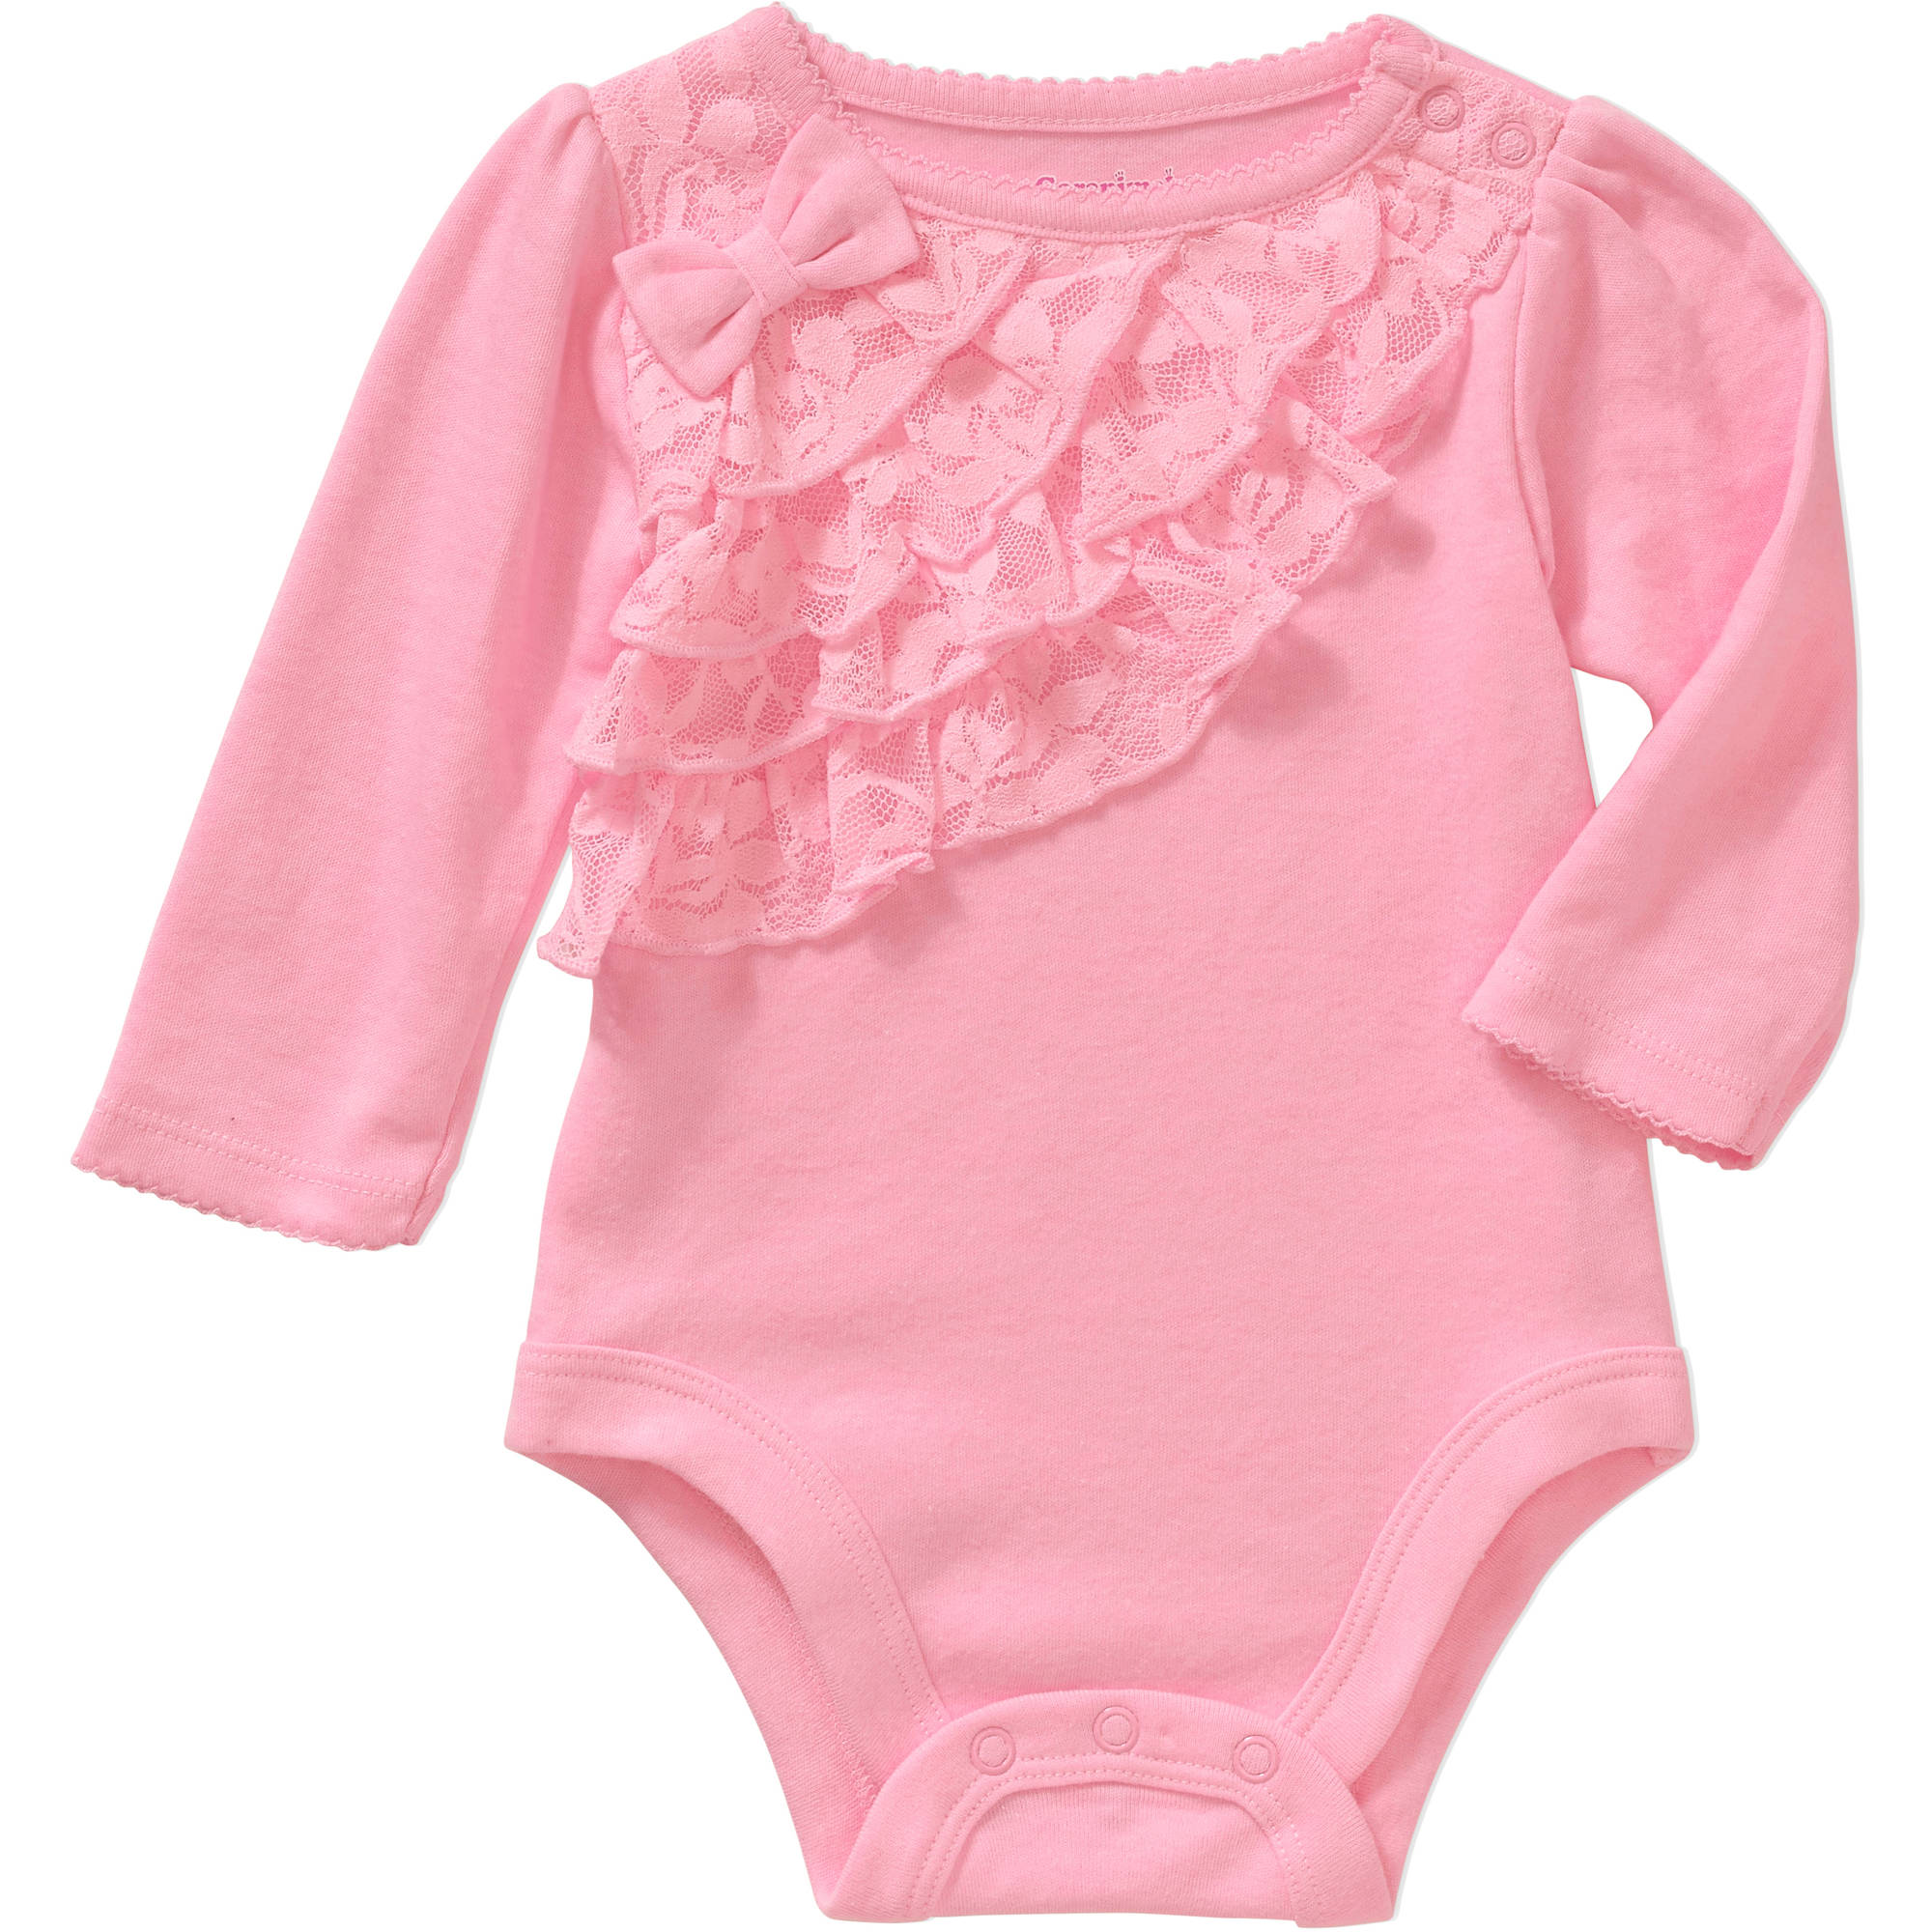 Garanimals Newborn Baby Girl Long Sleeve Lace Ruffle Bodysuit